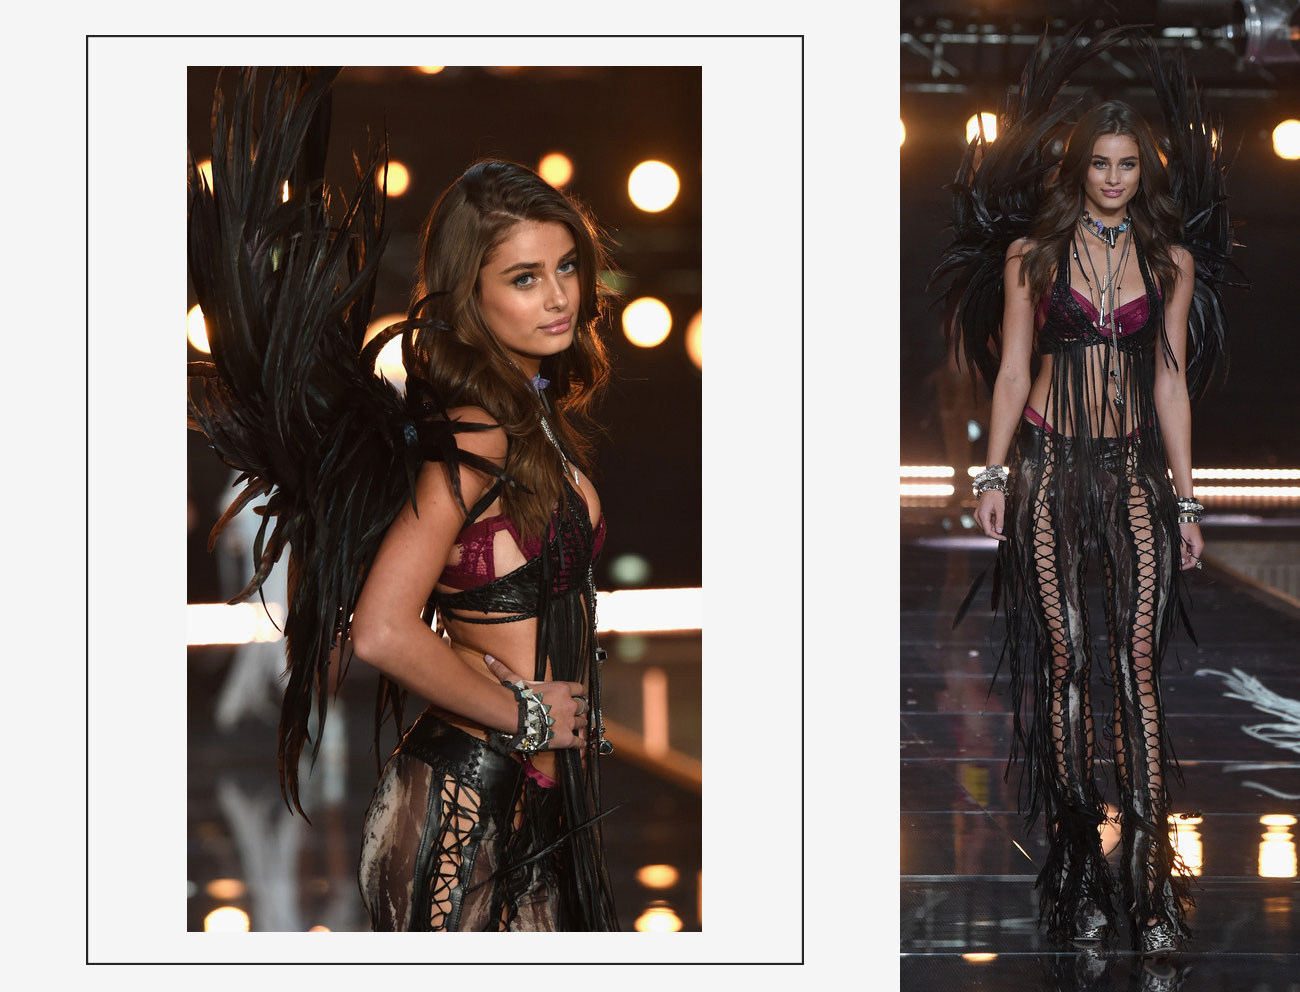 victorias-secret-2015-fashion-show-taylor-hill-feather-wings